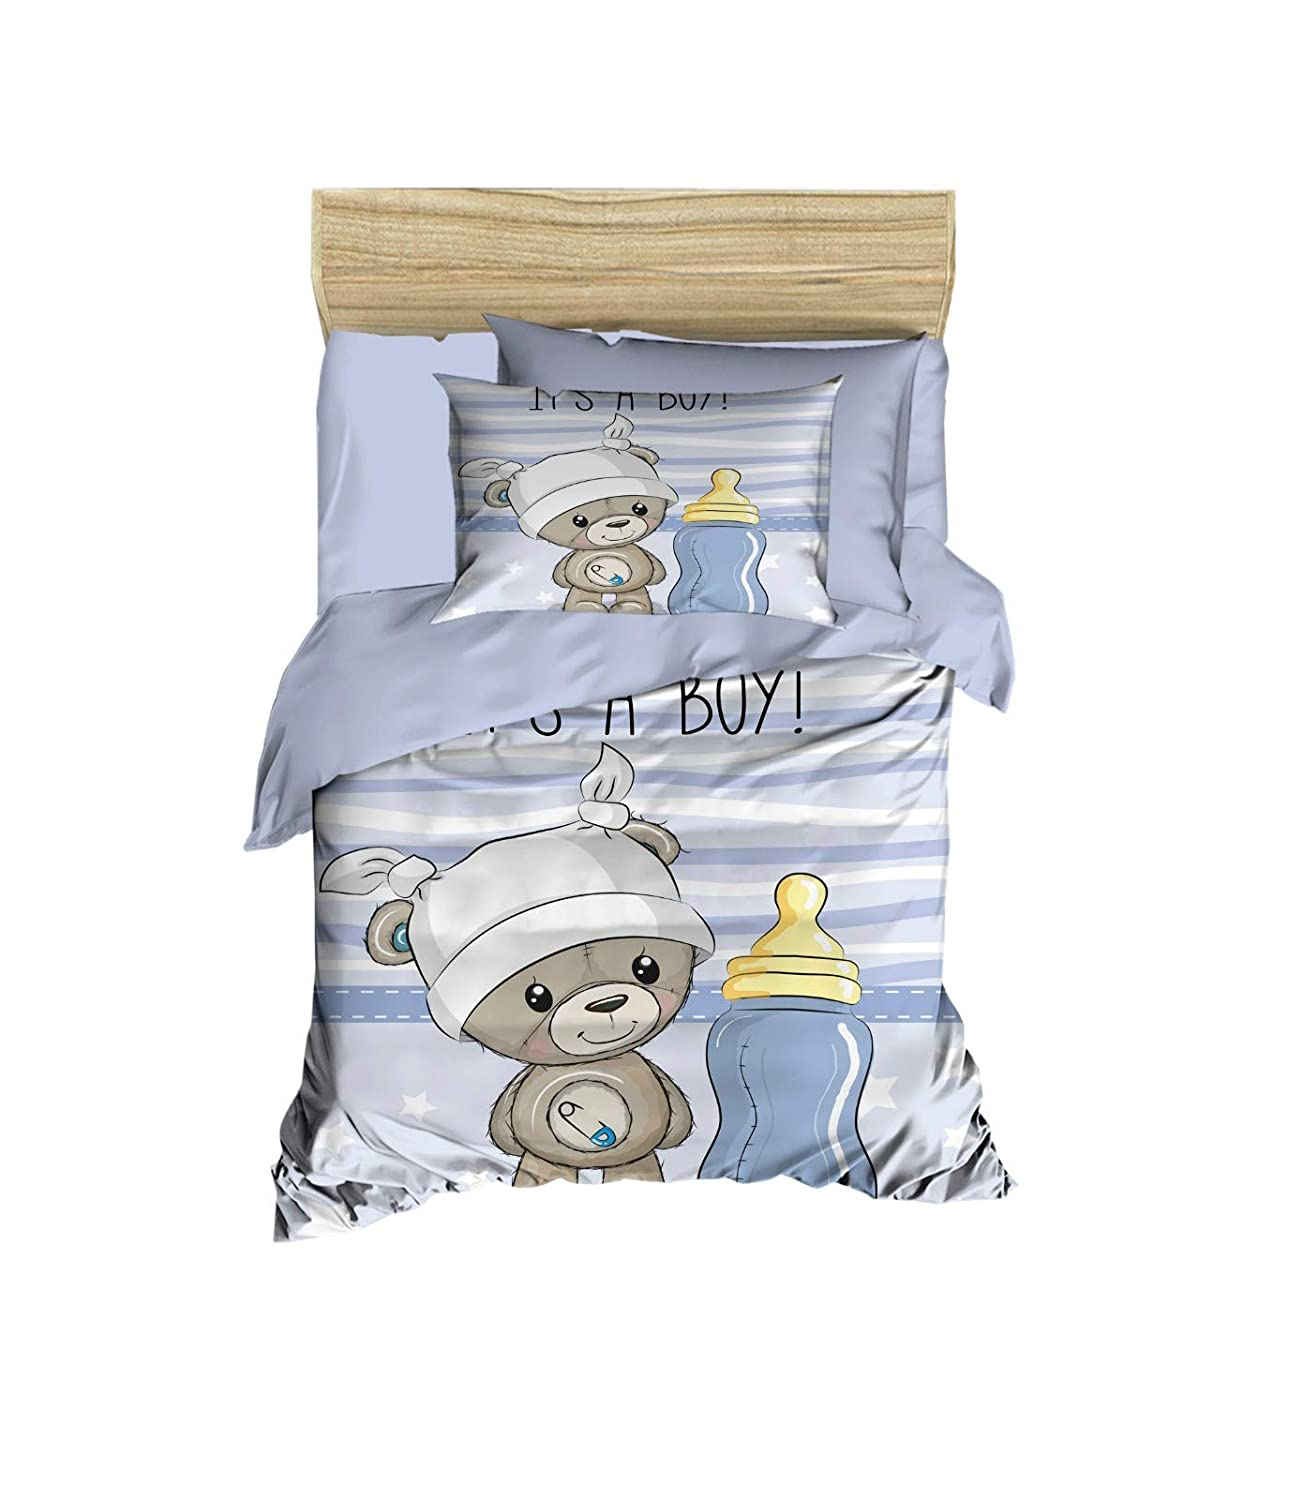 100% Cotton Baby Bedding Bear Themed Nursery Baby Bed Set, Toddlers Crib Bedding for Baby Boys, Duvet Cover Set with Comforter, 5 Pieces